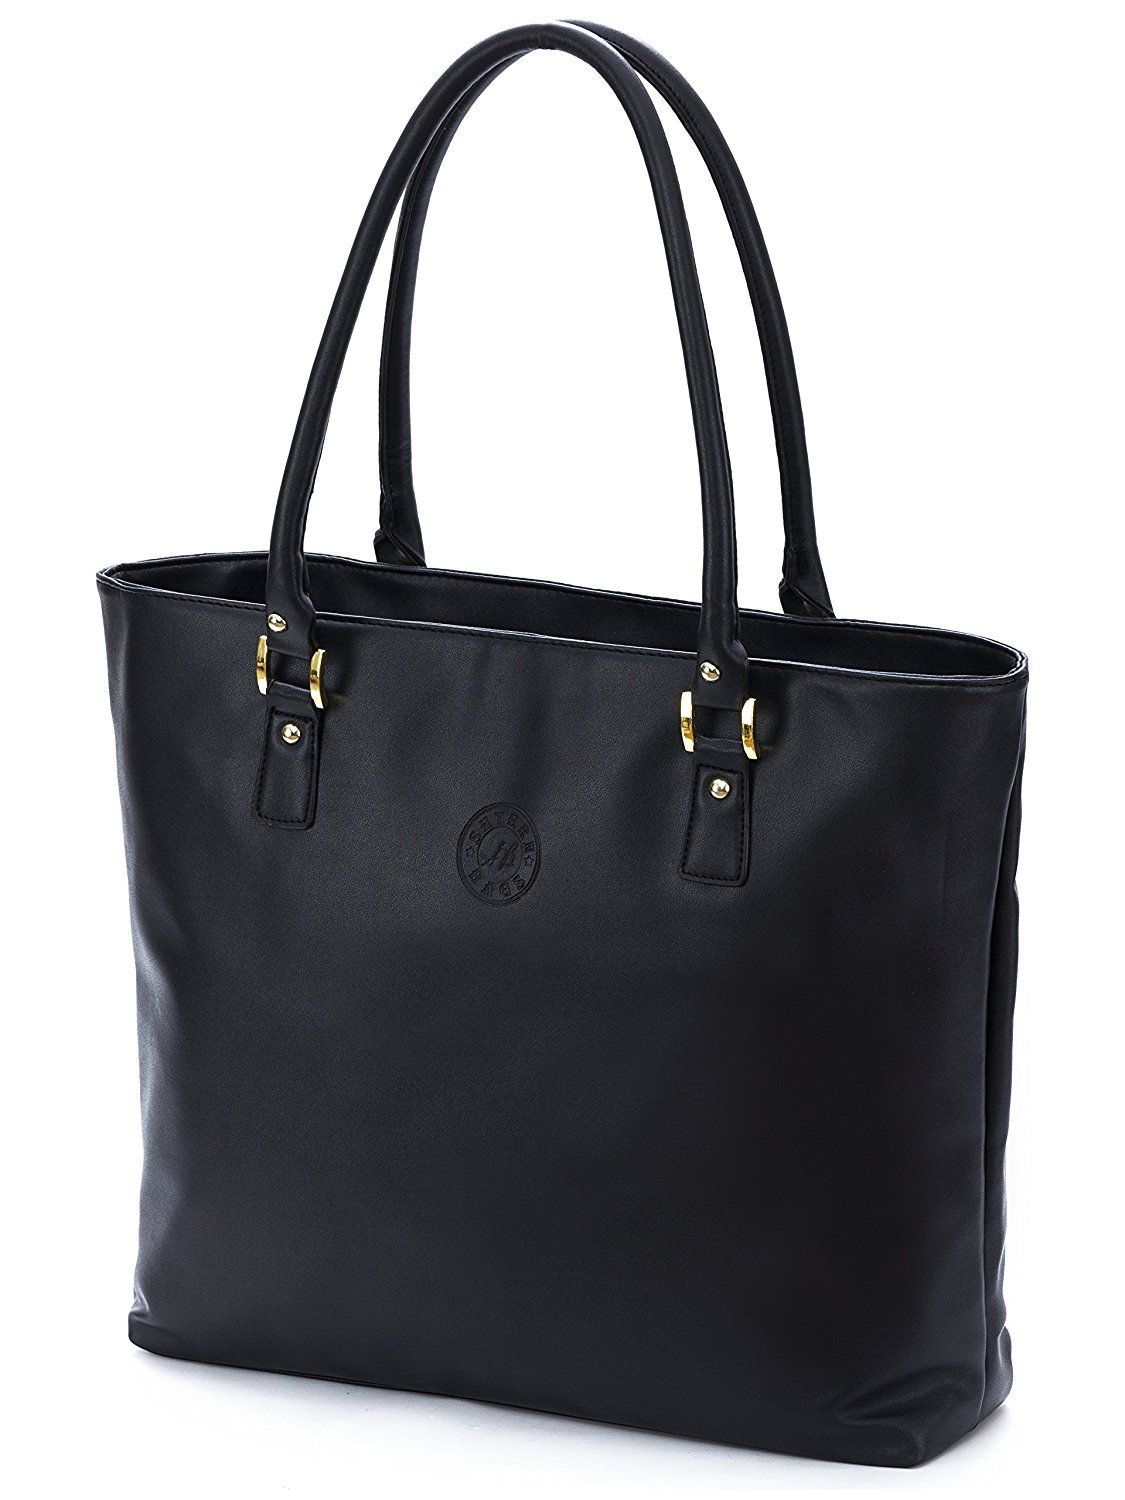 Amazon.com: Shtern Women's Laptop Tote Bag, Vegan Leather Shoulder Bag for Laptops up to 17 Inches with Plenty of Extra Space (18x14x3 Inches, Metallic Black): Computers & Accessories